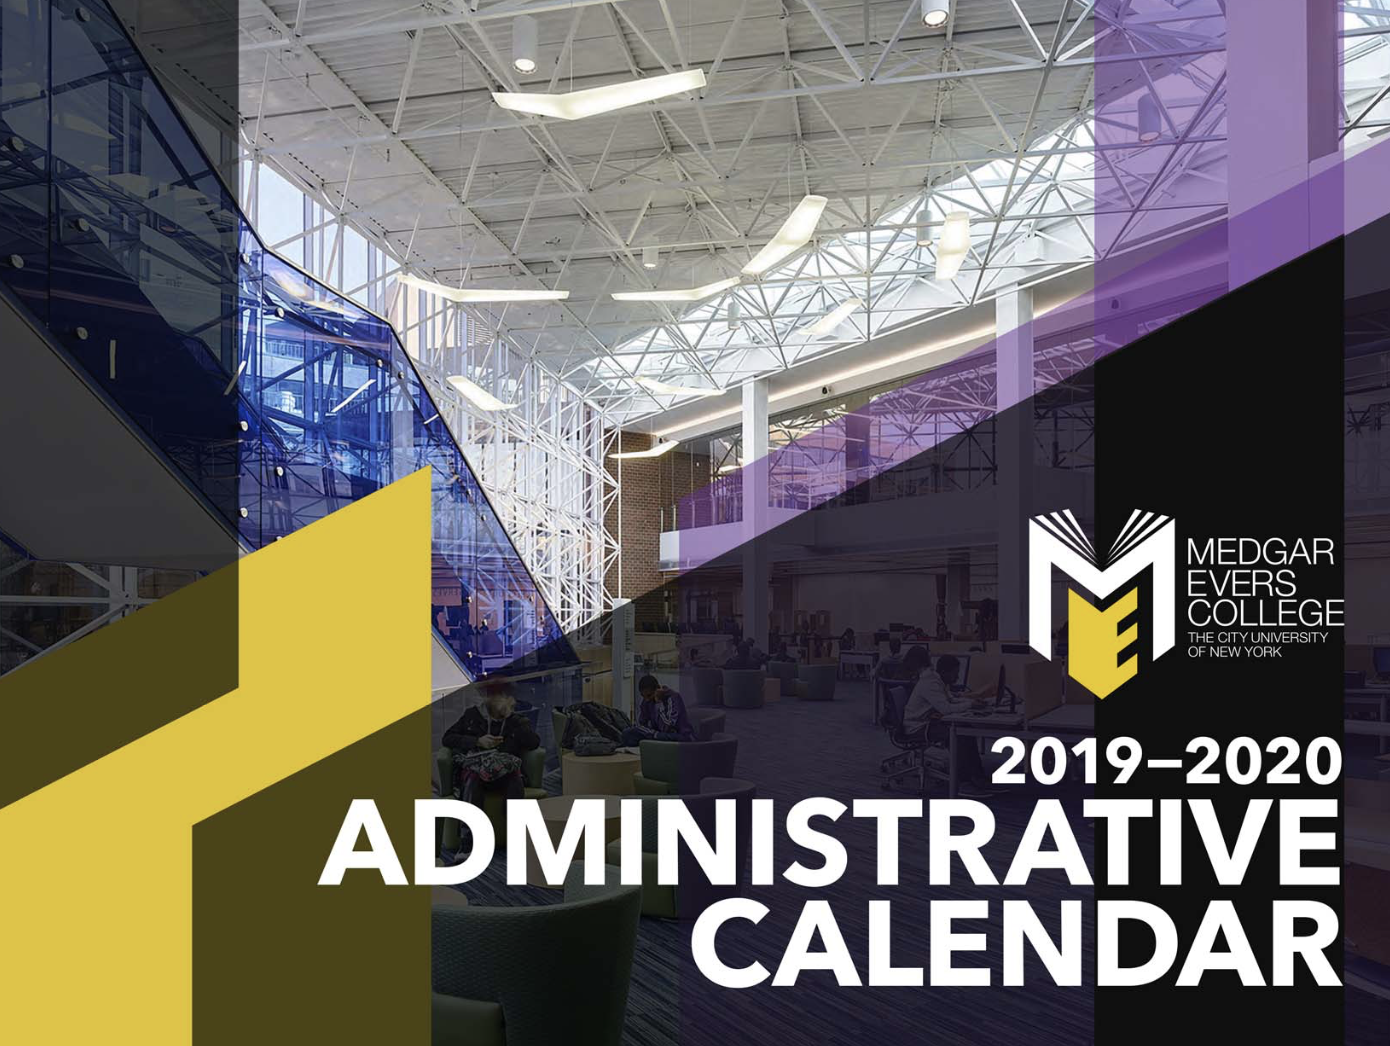 Link to open Administrative Calendar PDF for 2019 - 2020